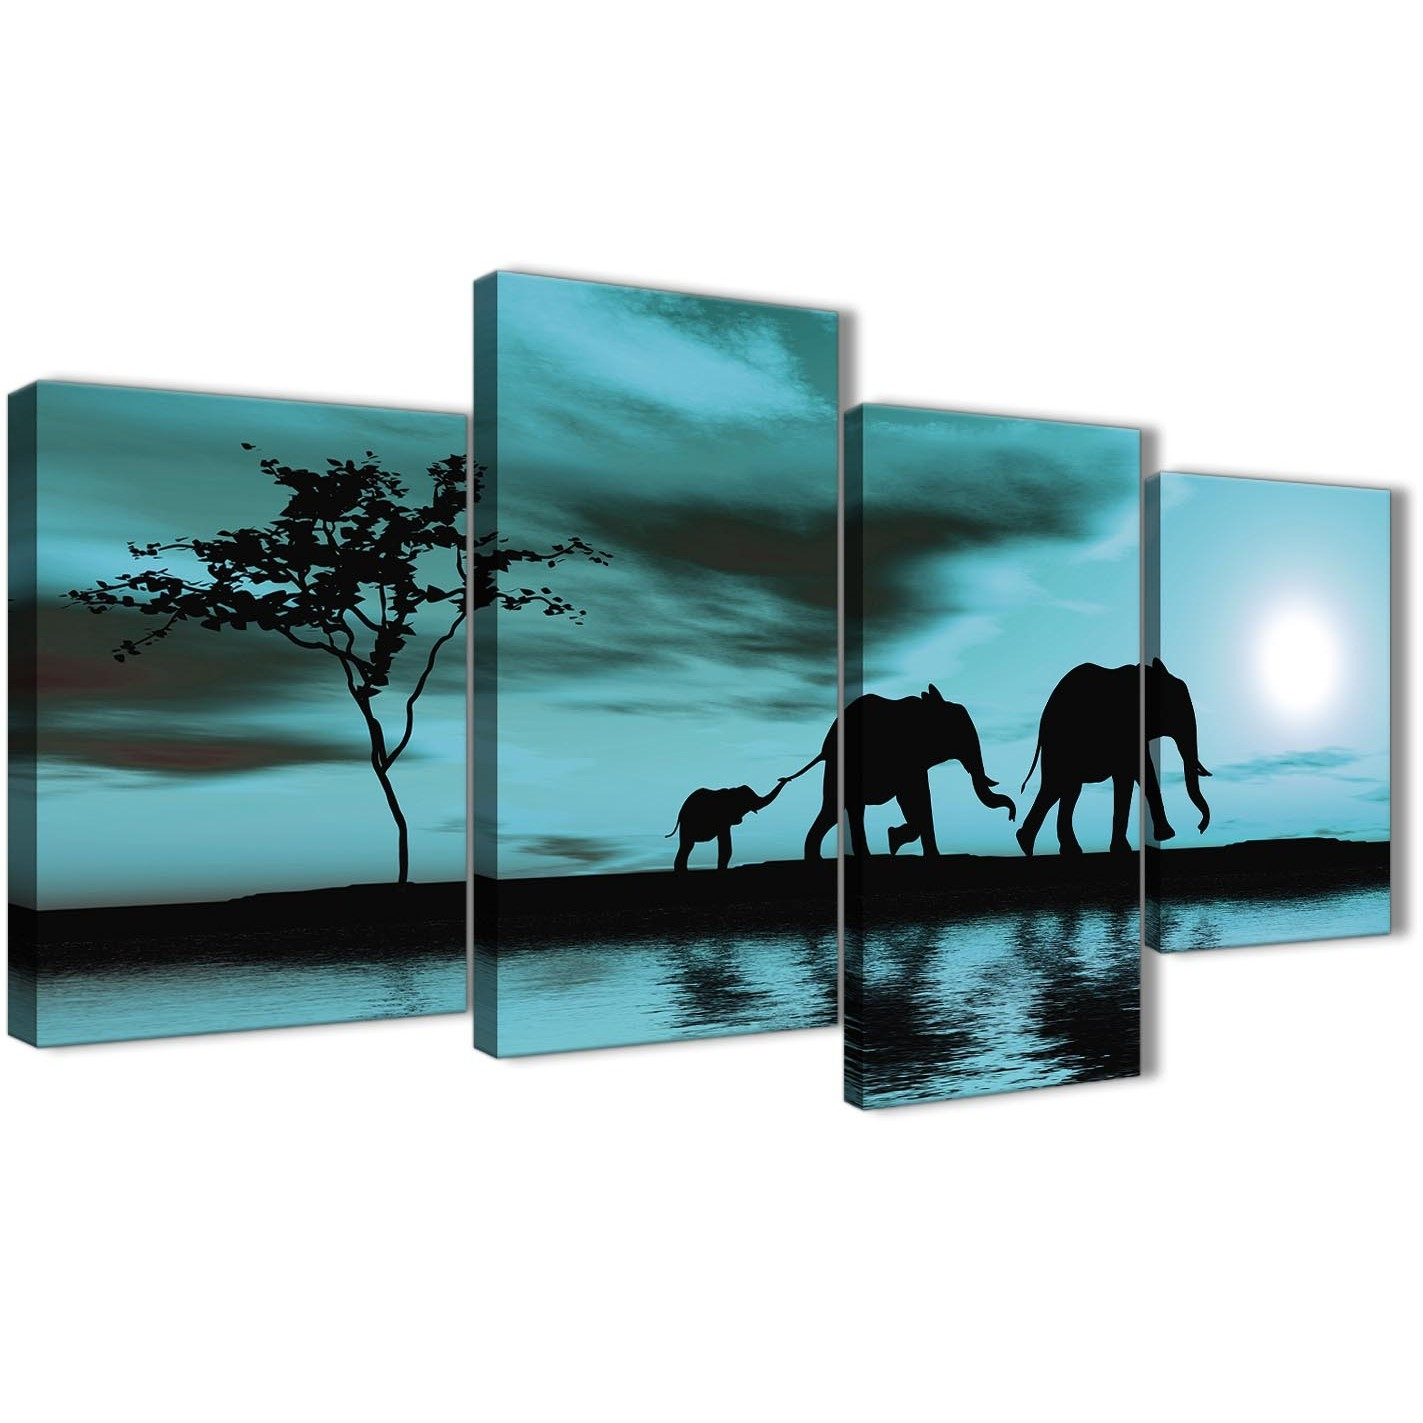 Large Teal African Sunset Elephants Canvas Wall Art Print – Multi 4 With Recent Oversized Teal Canvas Wall Art (View 3 of 20)